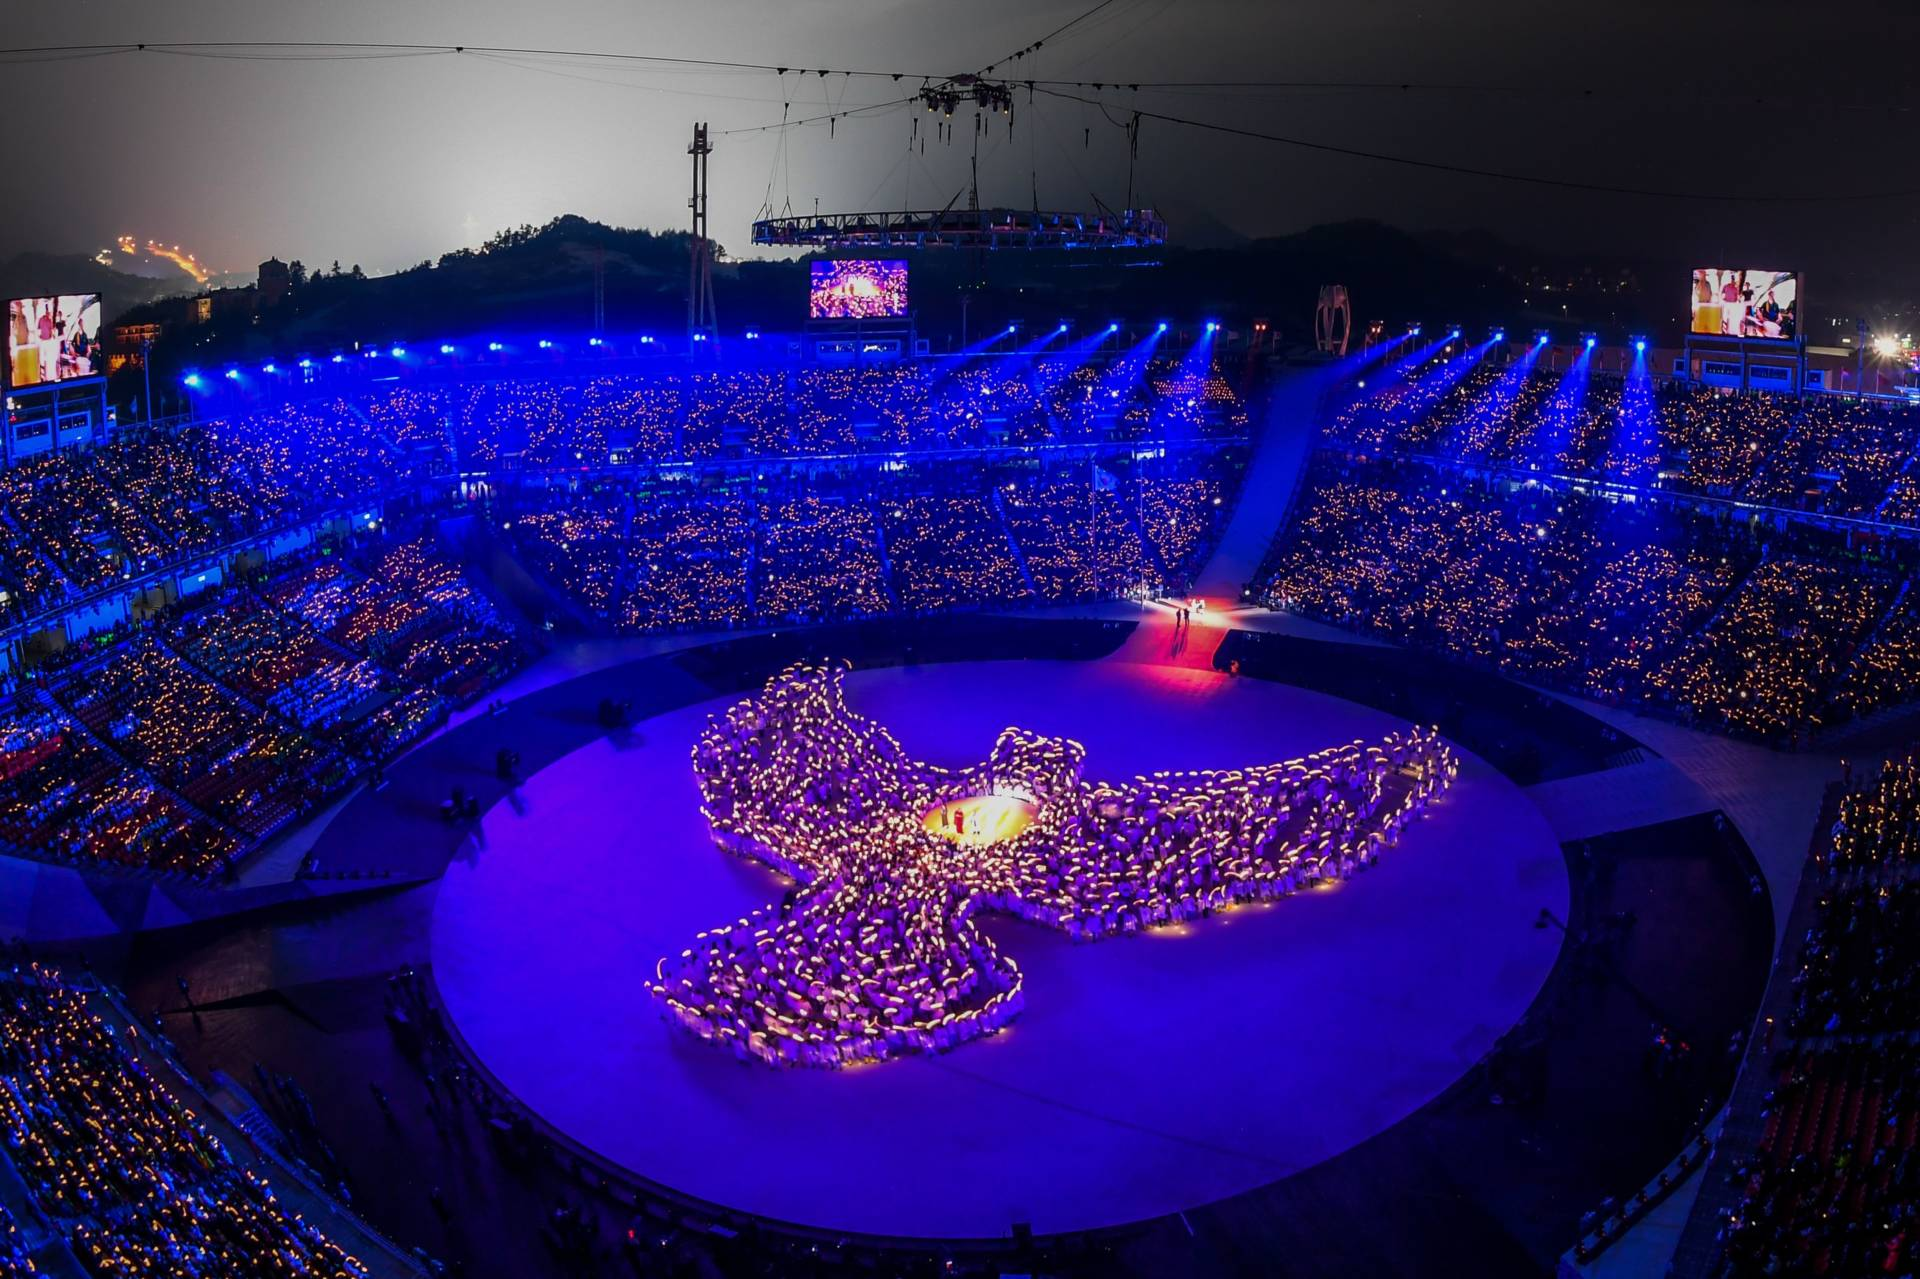 More than 1,200 people, including 1,000 residents of Gangwon province, form the shape of a dove out of candlelight during the opening ceremony. Francois-Xavier Marit/AFP/Getty Images